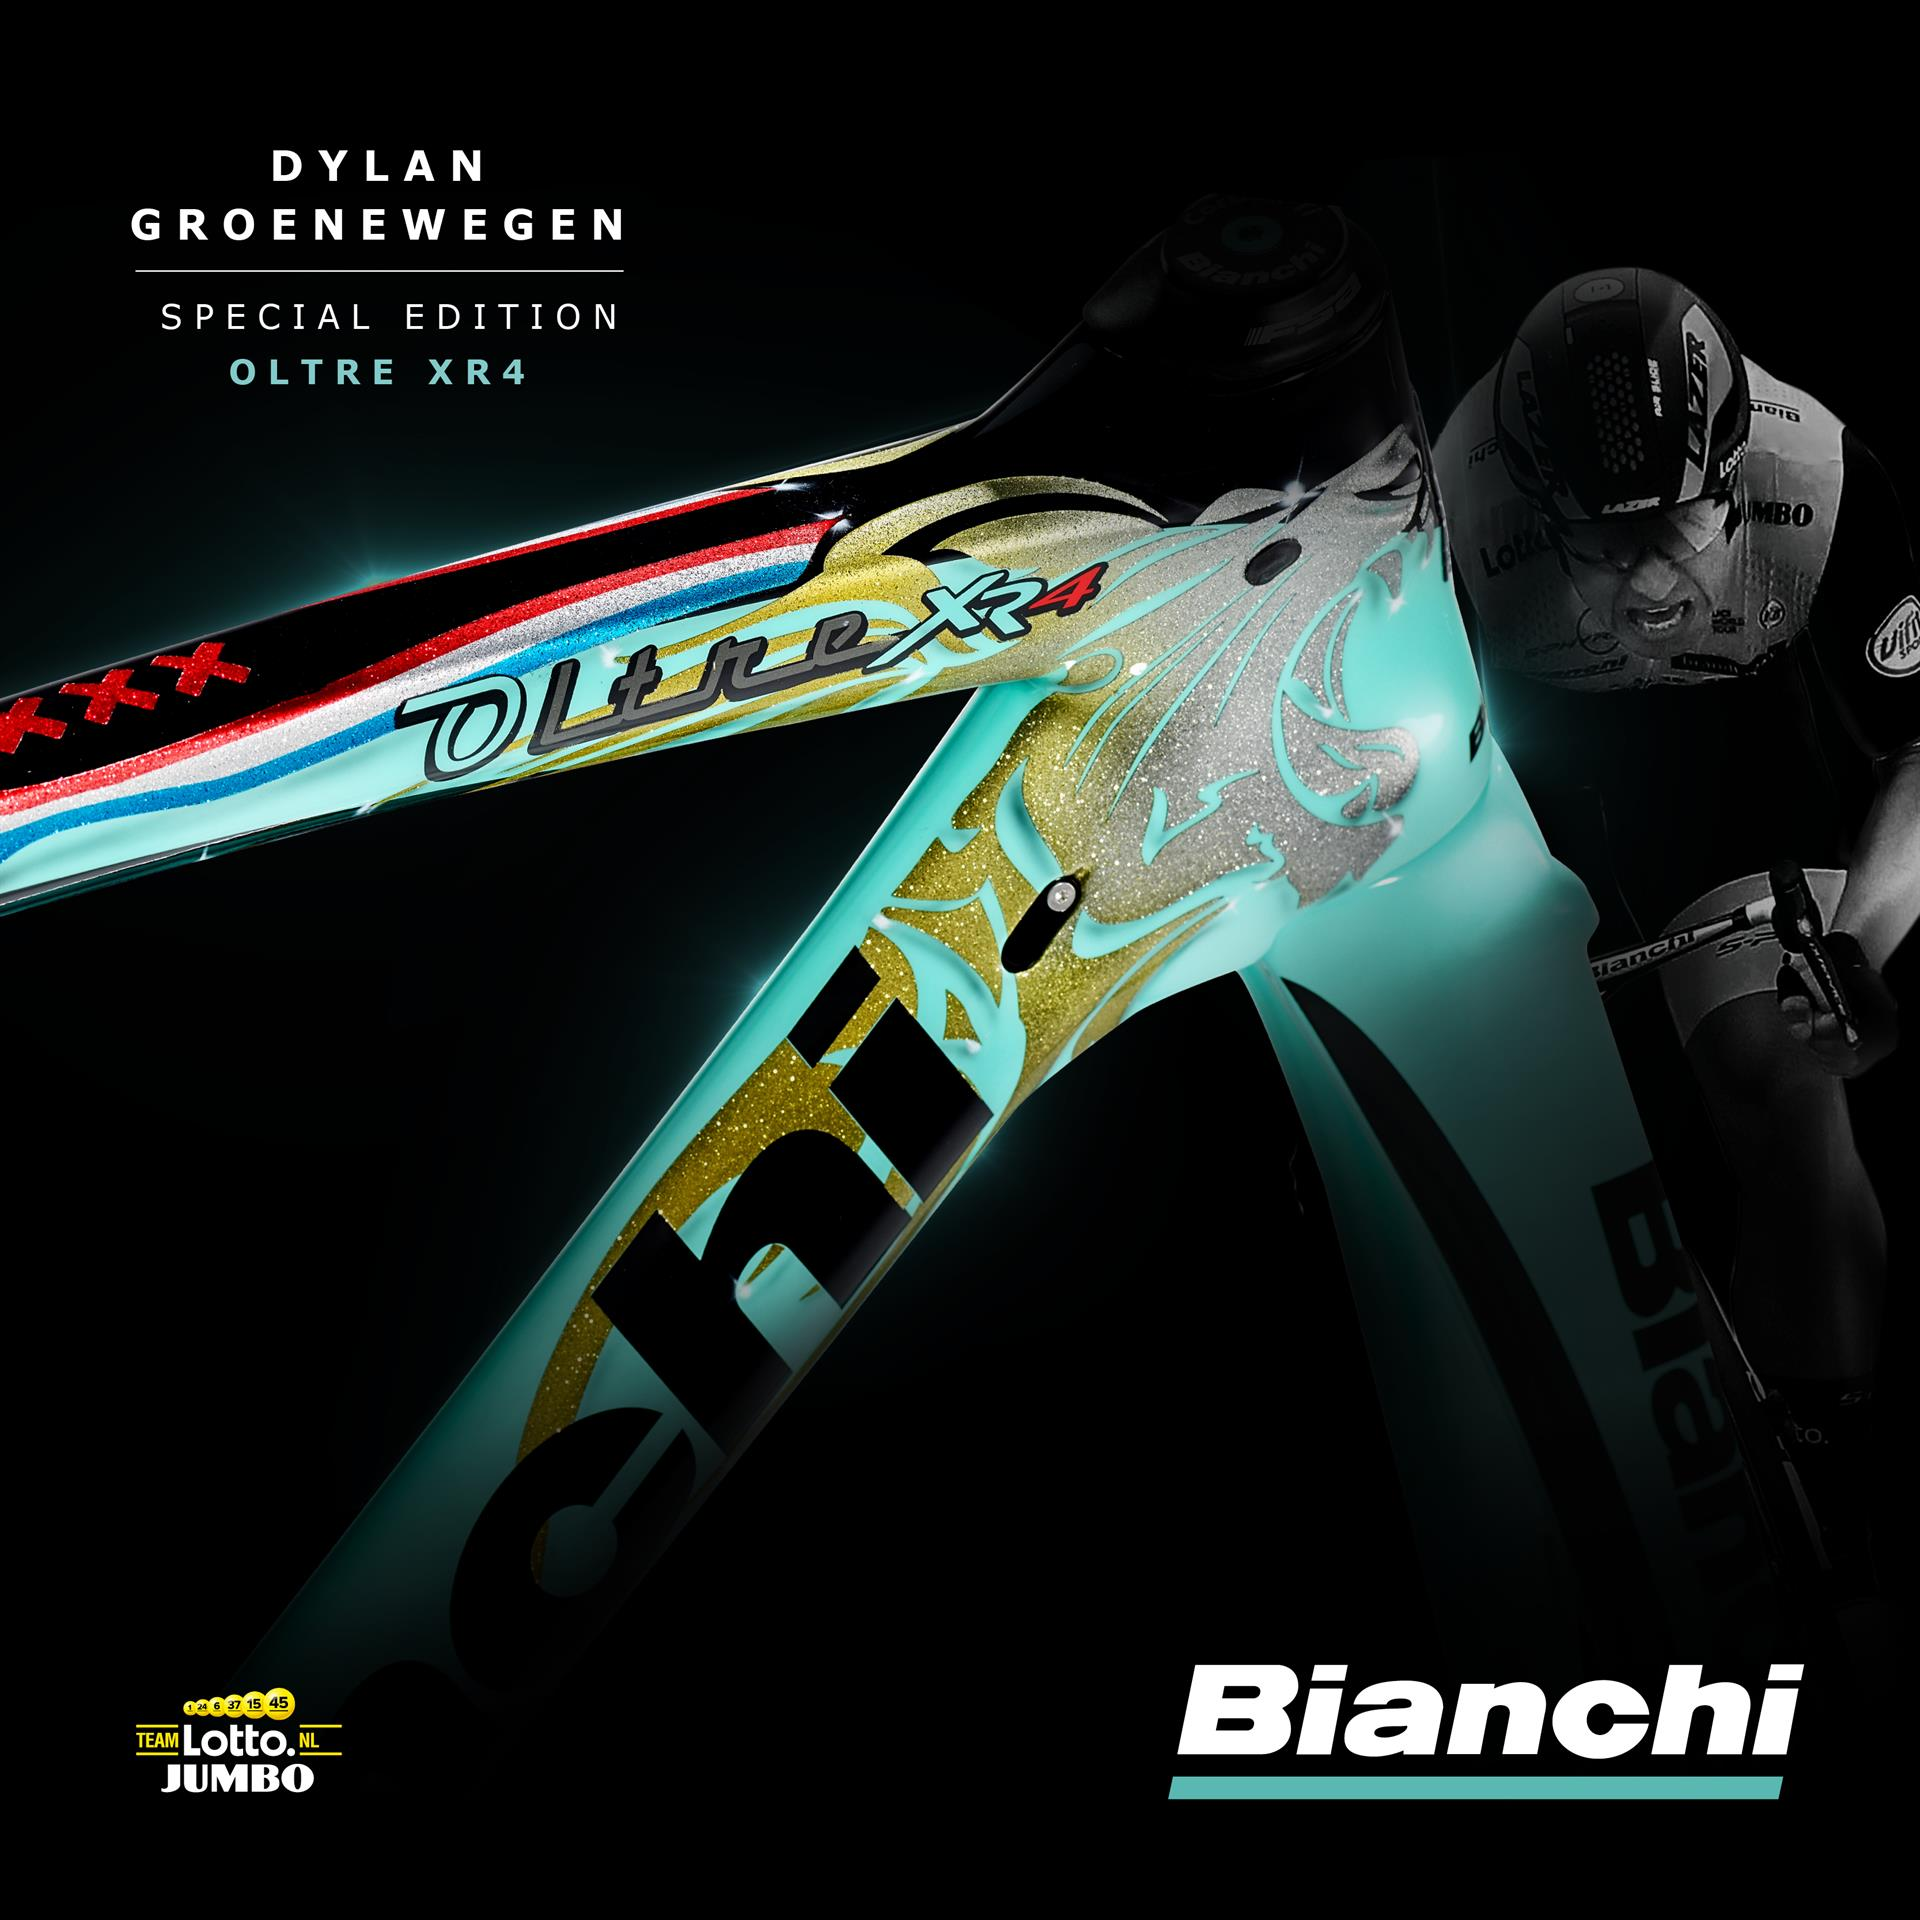 Bianchi Oltre XR4 Special Edition